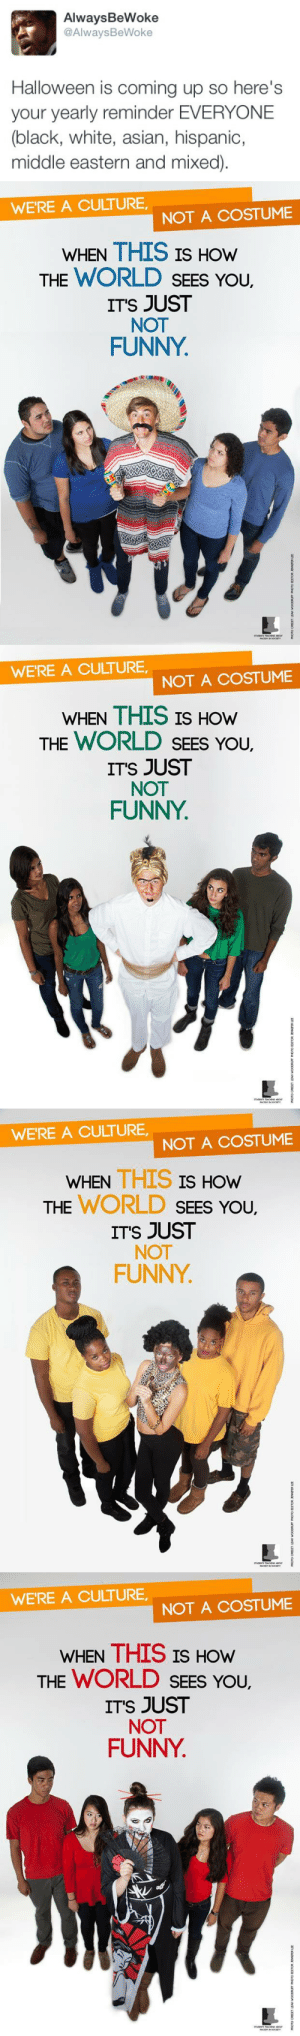 Asian, Fake, and Funny: AlwaysBeWoke  @AlwaysBeWoke  Halloween is coming up so here's  your yearly reminder EVERYONE  (black, white, asian, hispanic,  middle eastern and mixed)   WE'RE A CULTURE  NOT A COSTUME  WHEN THIS IS HOW  THE WORLD SEES YoU.  ITS JUST  NOT  FUNNY   WE'RE A CULTURE  NOT A COSTUME  WHEN THIS IS HOW  THE WORLD SEES YoU.  ITS JUST  NOT  FUNNY   WE'RE A CULTURE,  NOT A COSTUME  WHEN THIS IS  HOW  THE WORLD SEEs You,  ITS JUST  NOT  FUNNY   WE'RE A CULTURE  NOT A COSTUME  WHEN THIS IS HOw  THE WORLD SEES You,  ITS JUST  NOT  FUNNY feministingforchange:  secluded-thunderstorm:  anti-capitalistlesbianwitch:  jewishzevran:  gaylienz:  alwaysbewoke:  alwaysbewoke: #NoRacistCostumes2k15   #NoRacistCostumes2k16  adding this pic because tbh Natives have a FUCK TON of racist costumes made after them. Shit like Indian Princess and headdresses and Reservation Queen. People continue to think its okay to dress up like us with their shitty fake feathers and 'war paint'. Its not.   ^People seem to forget this one  This shouldn't have to be said every year, but here we are again. C'mon, people.  #NORACISTCOSTUMES2K16  #NoRacistCostumes2K17